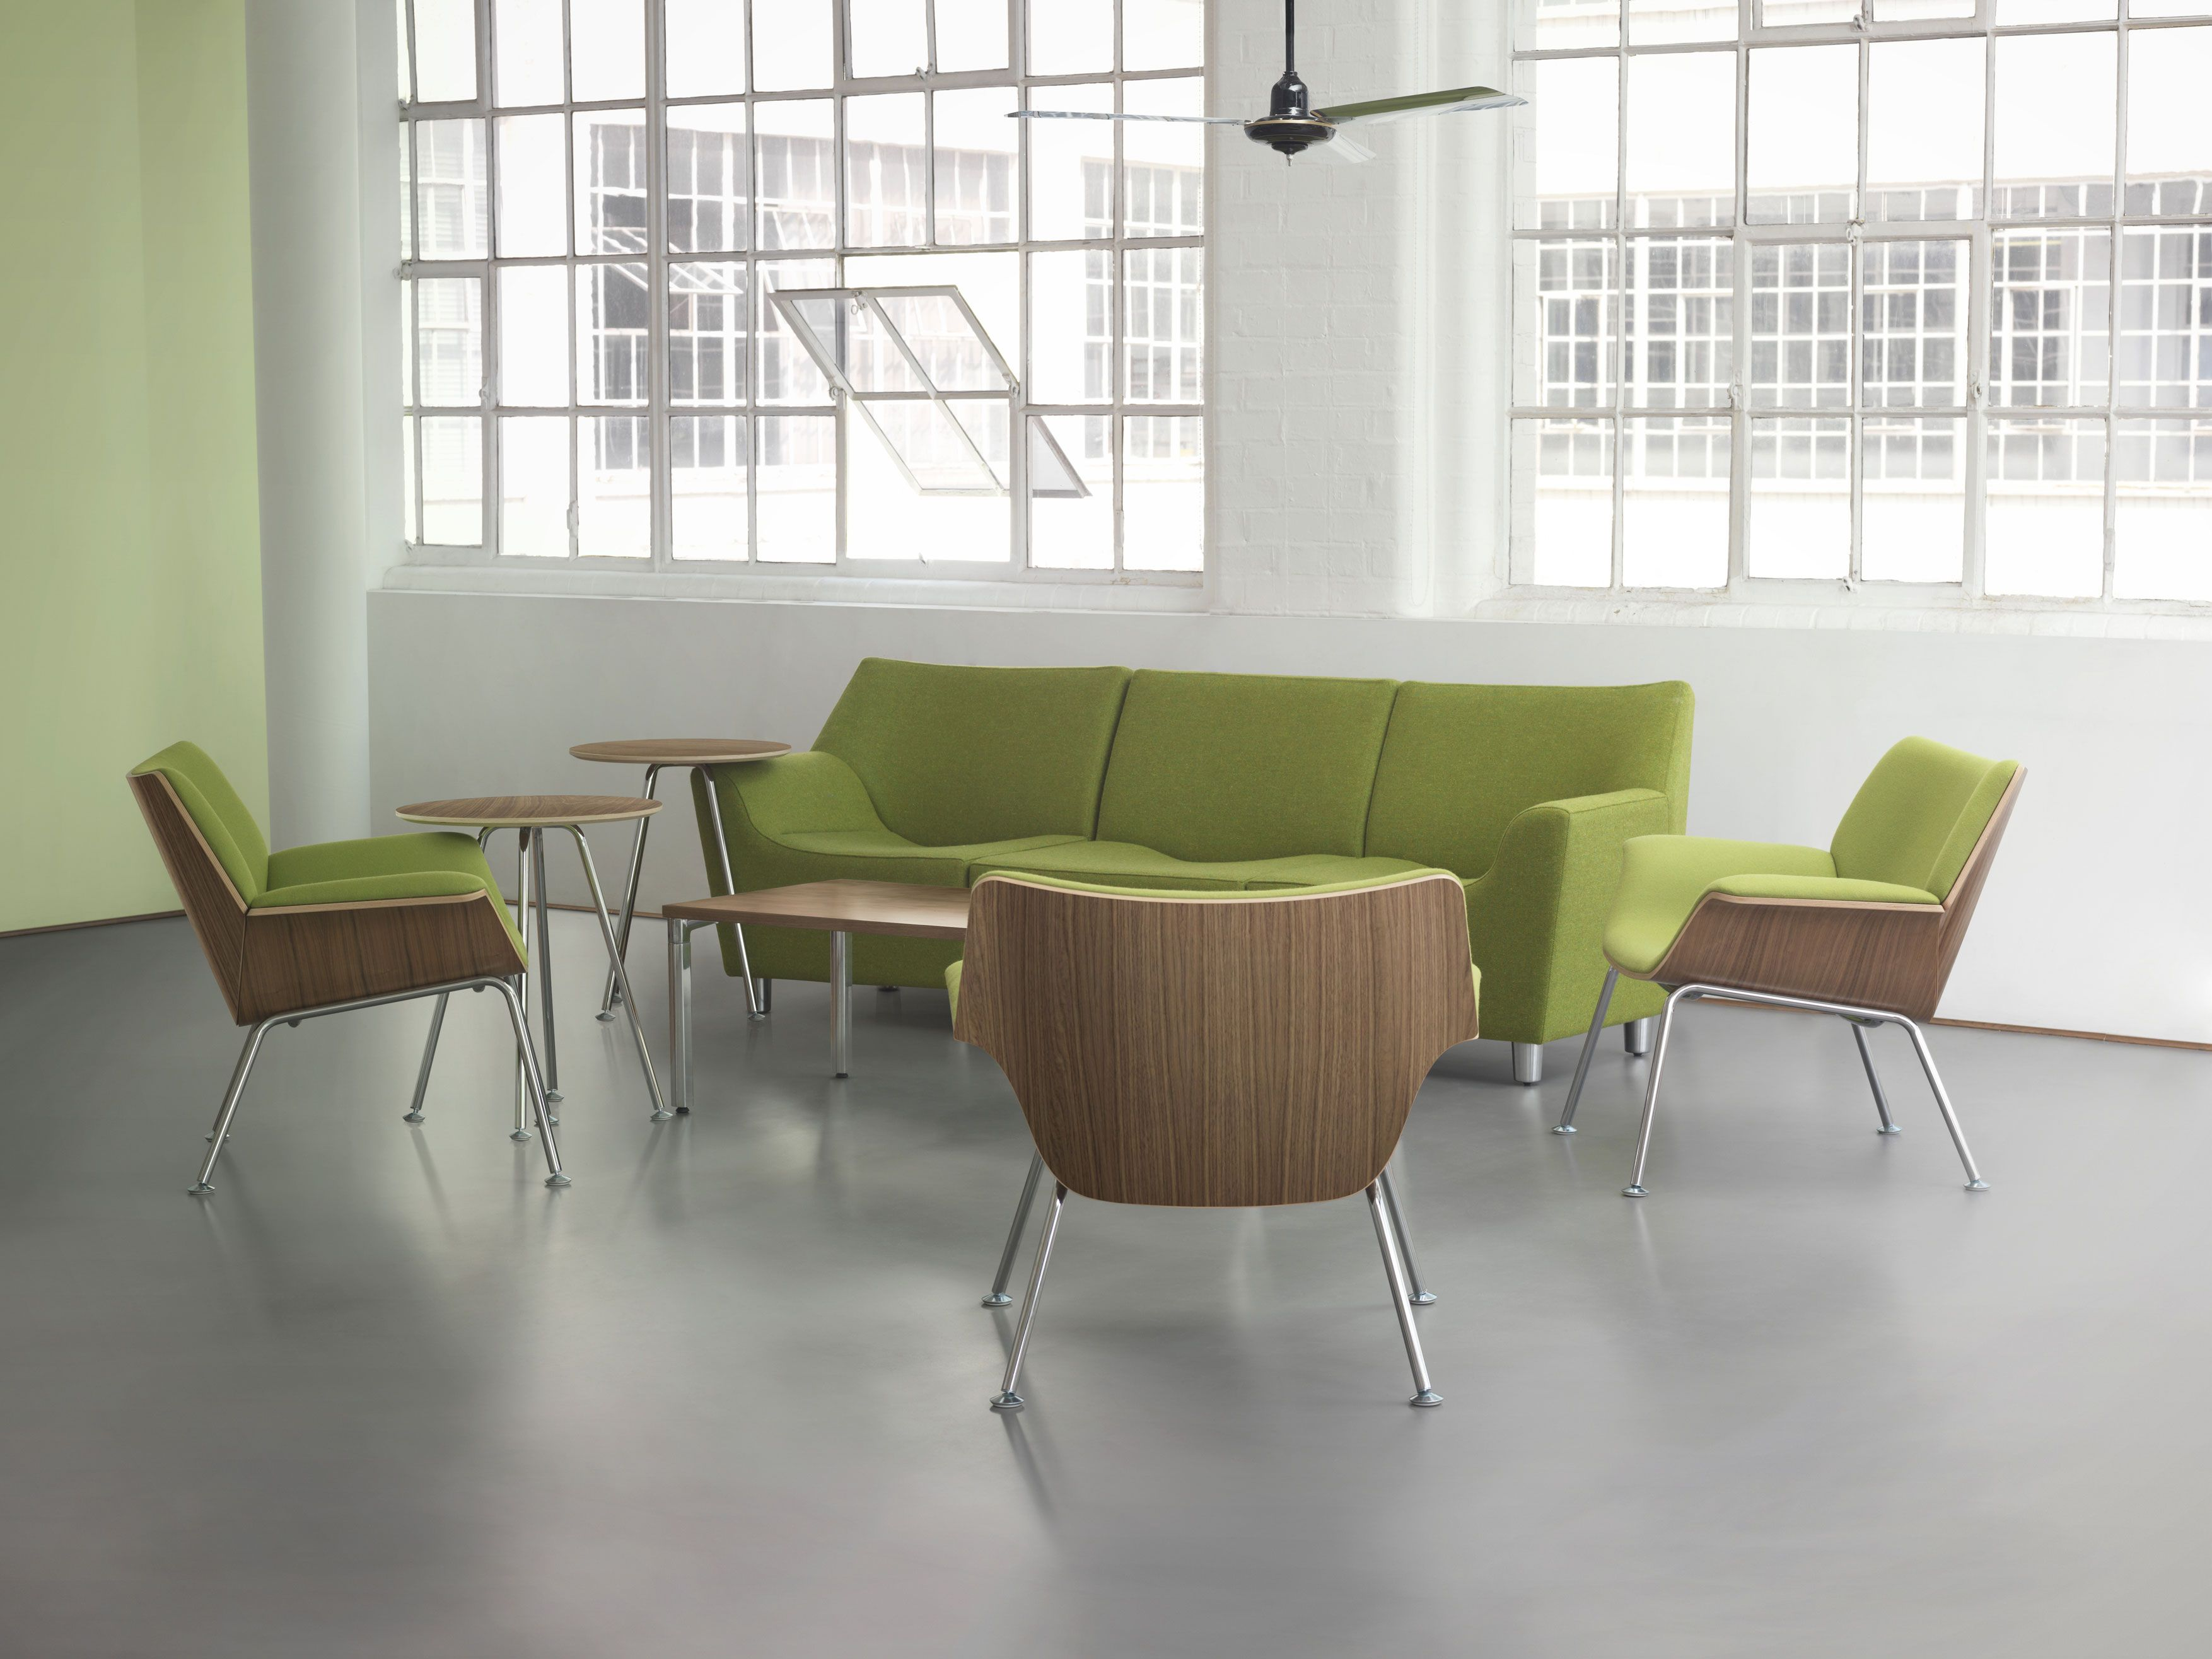 Herman Miller Swoop Spaces for Meeting